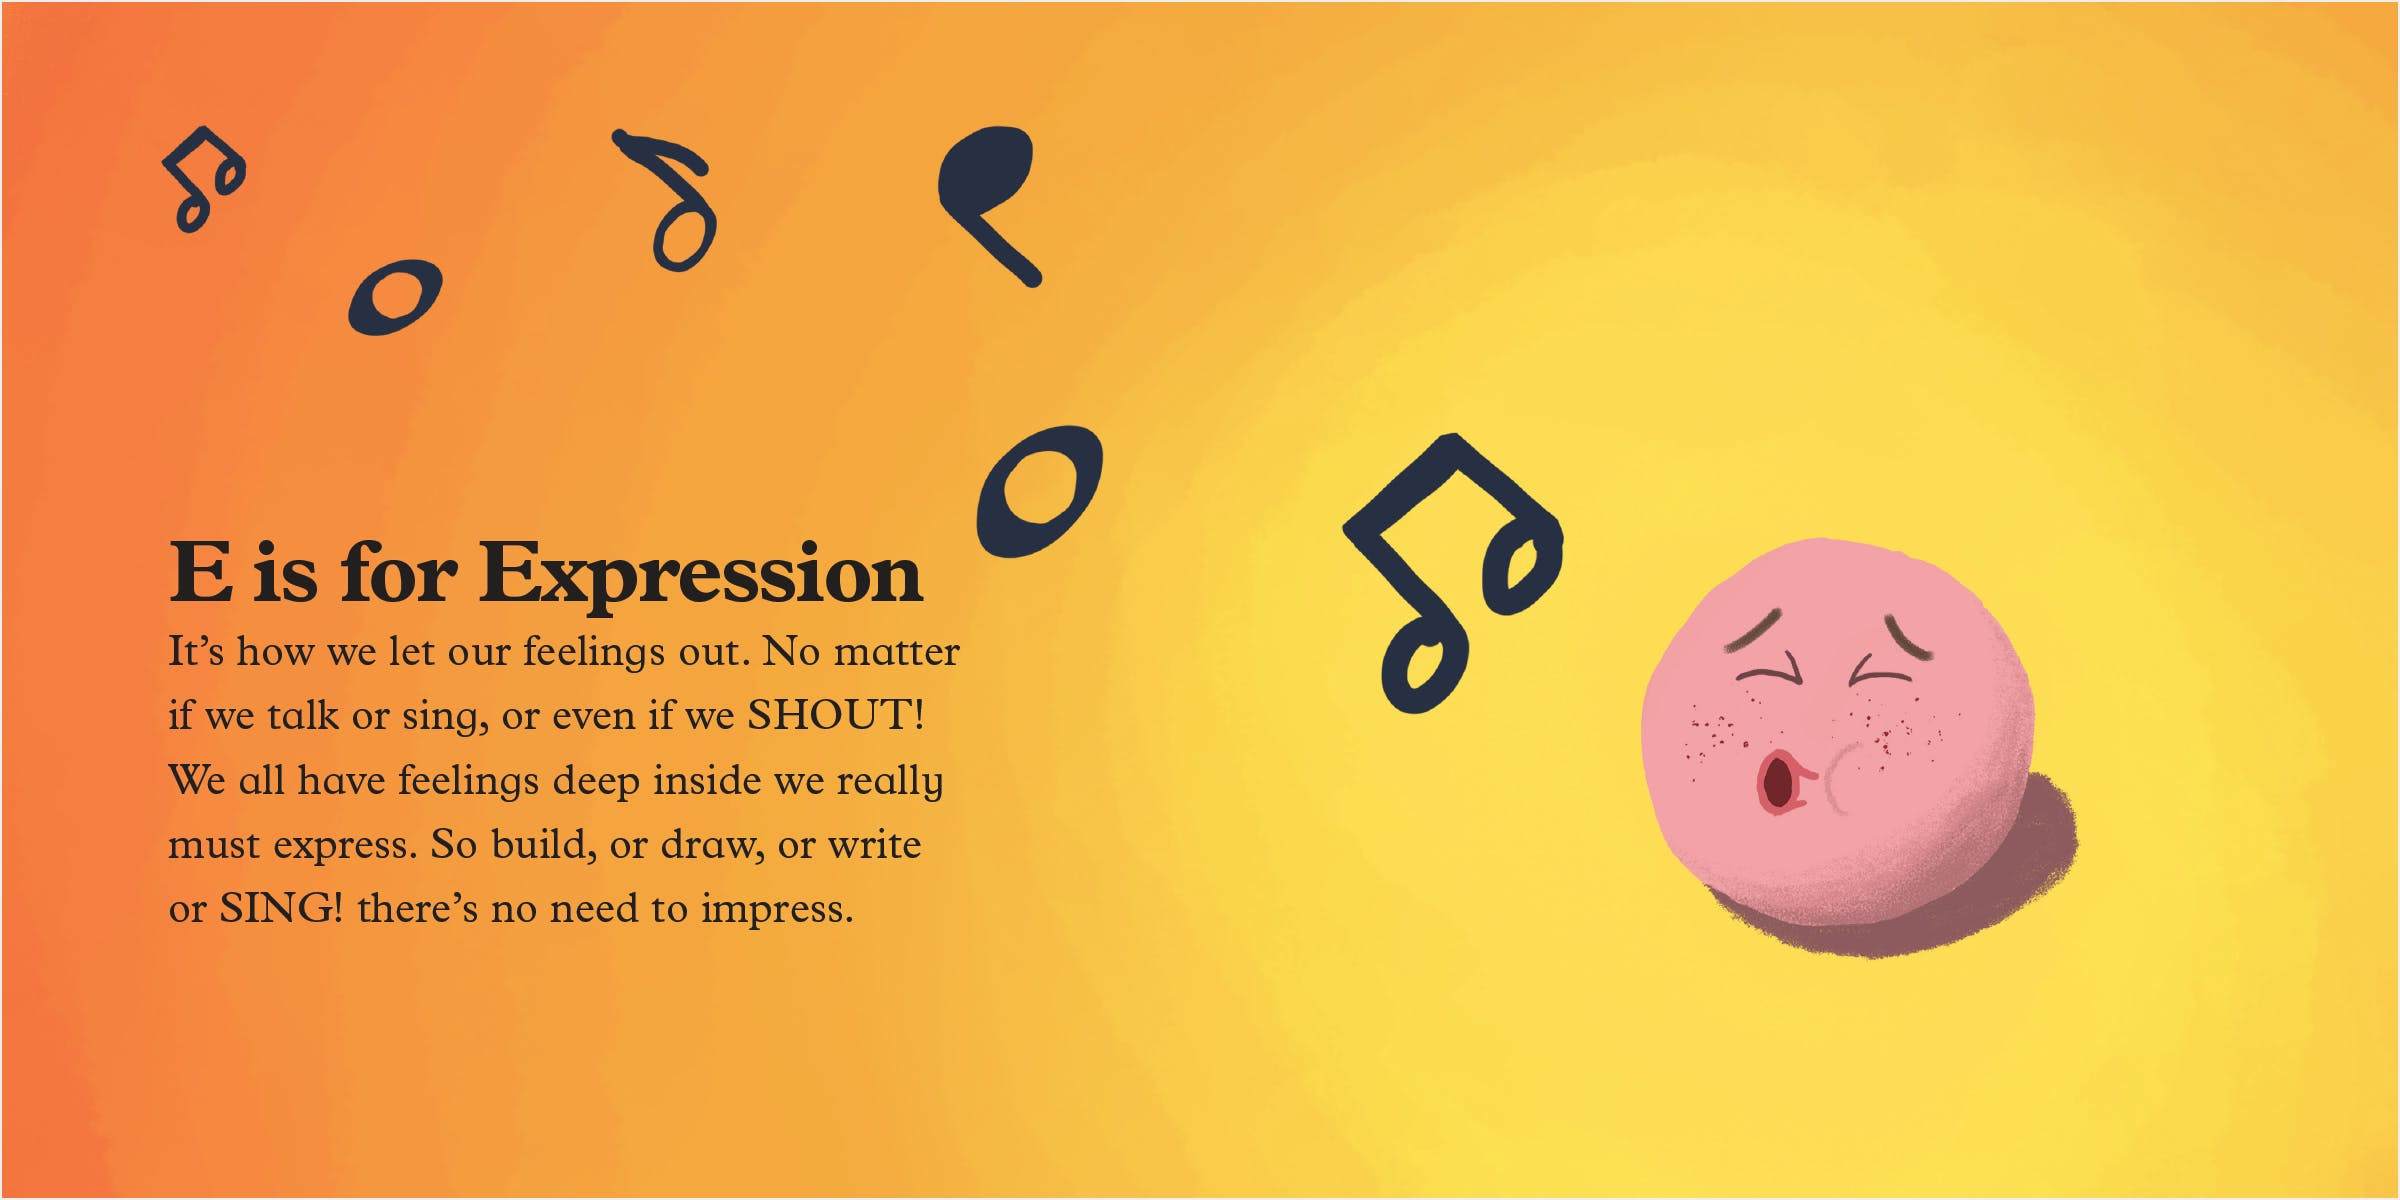 Full spread of expression: a sphere whistling a happy tune, an expression of pure joy.